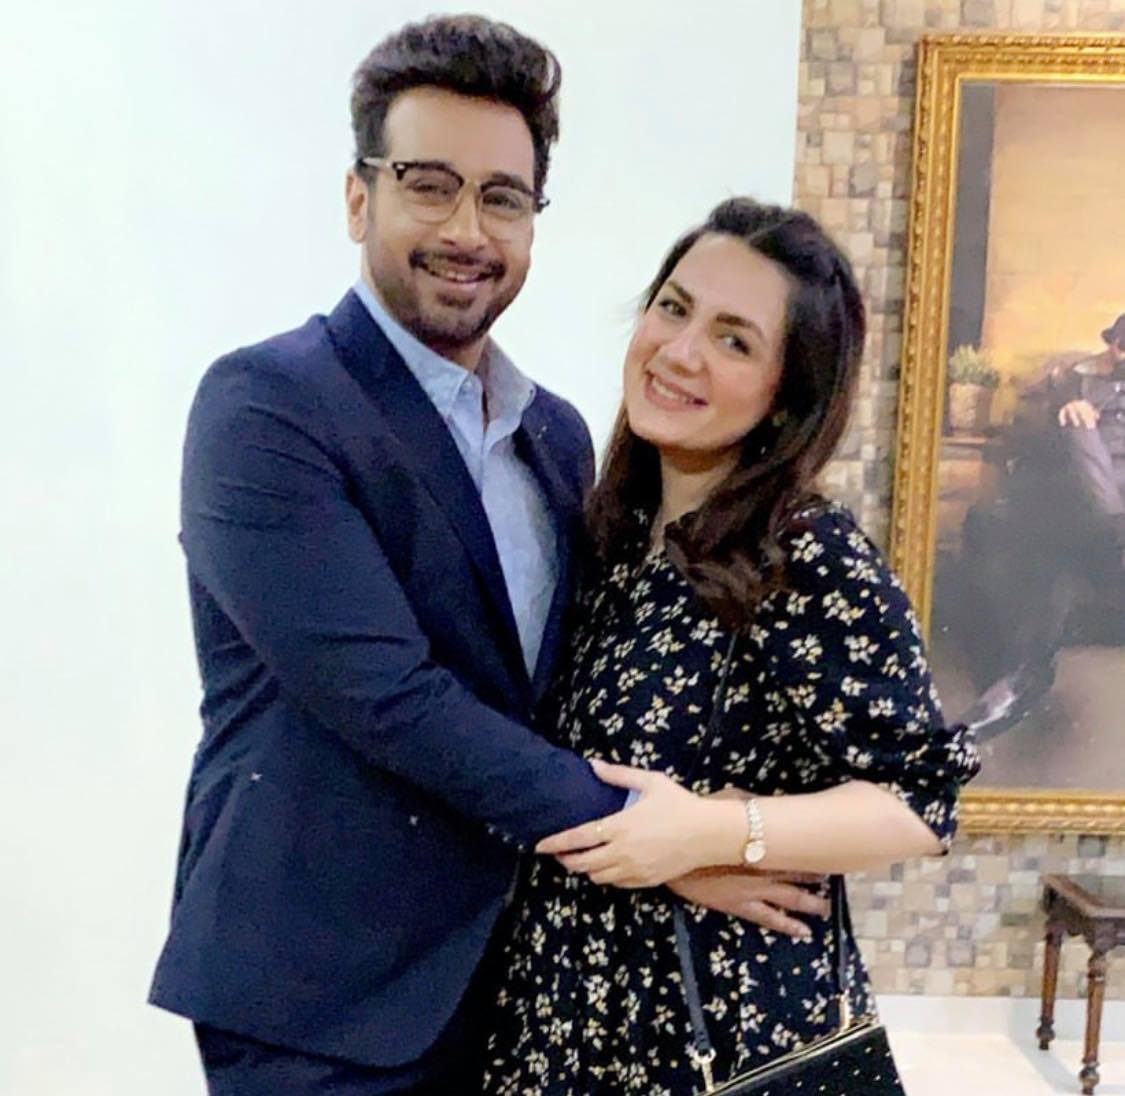 Faysal Qureshi - 10 Interesting Facts About Him